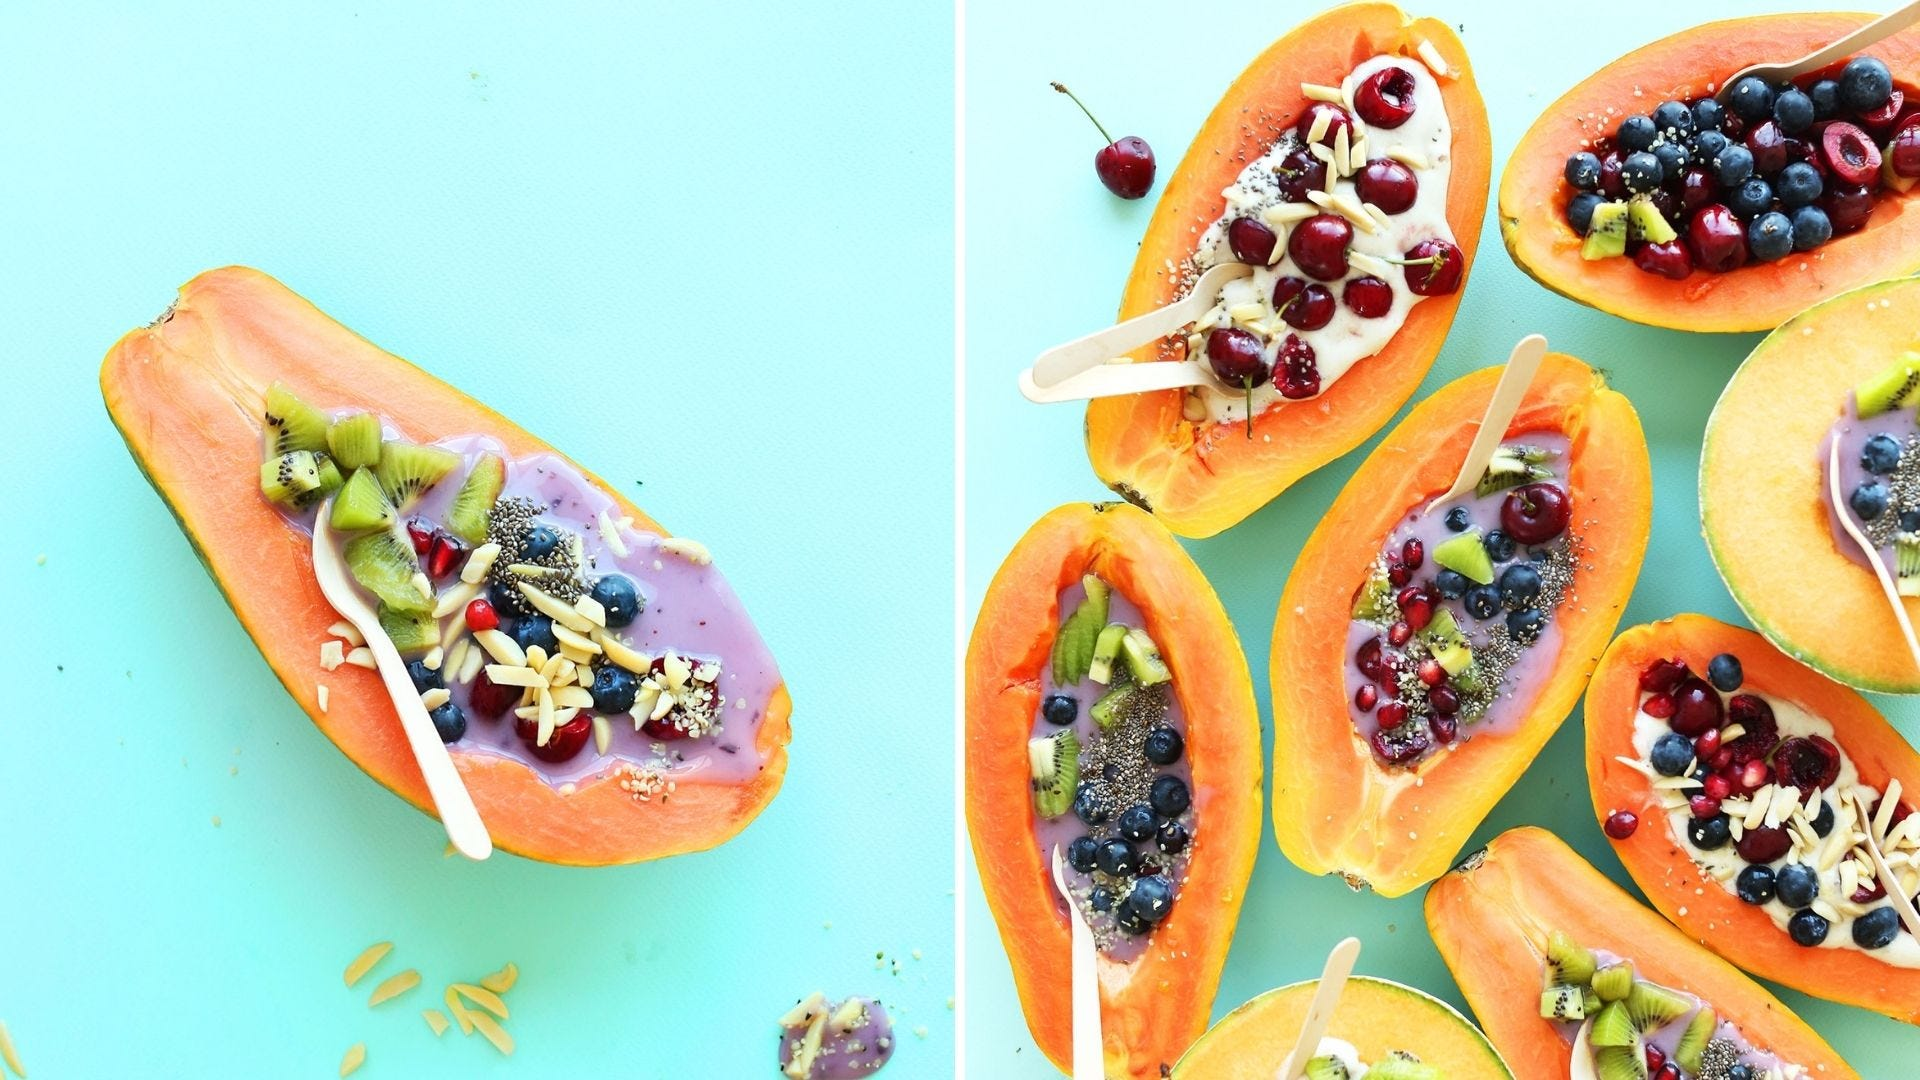 Papayas filled with yogurt, fruit, and toppings.